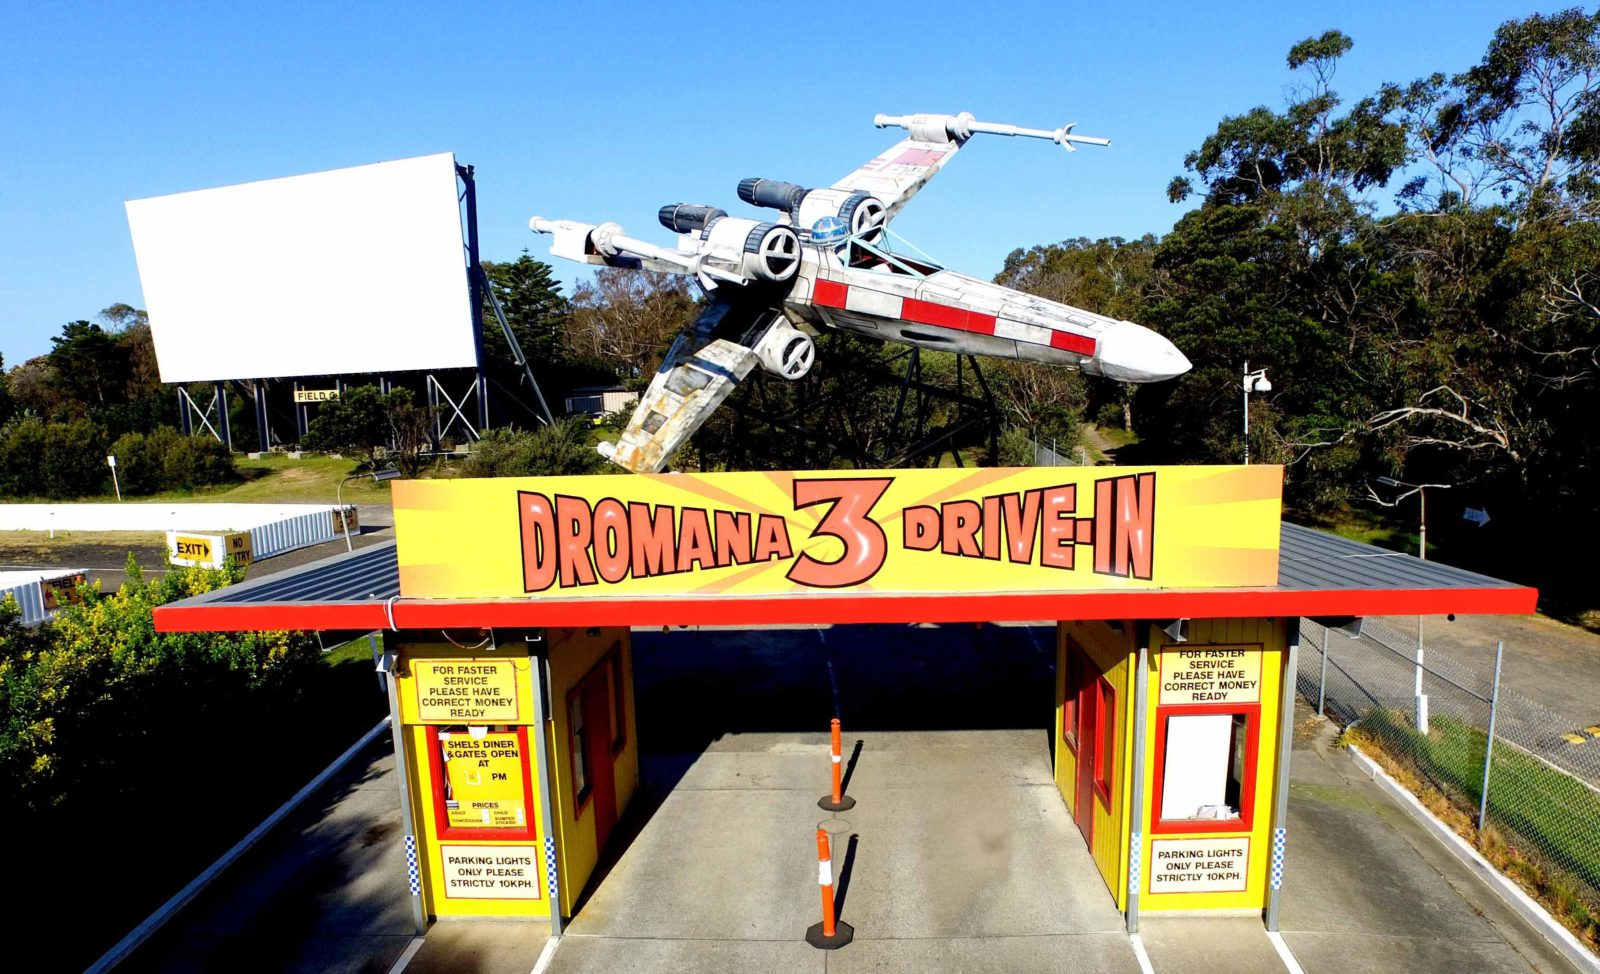 Dromana Drive In entrance and Star Wars X-Wing Fighter